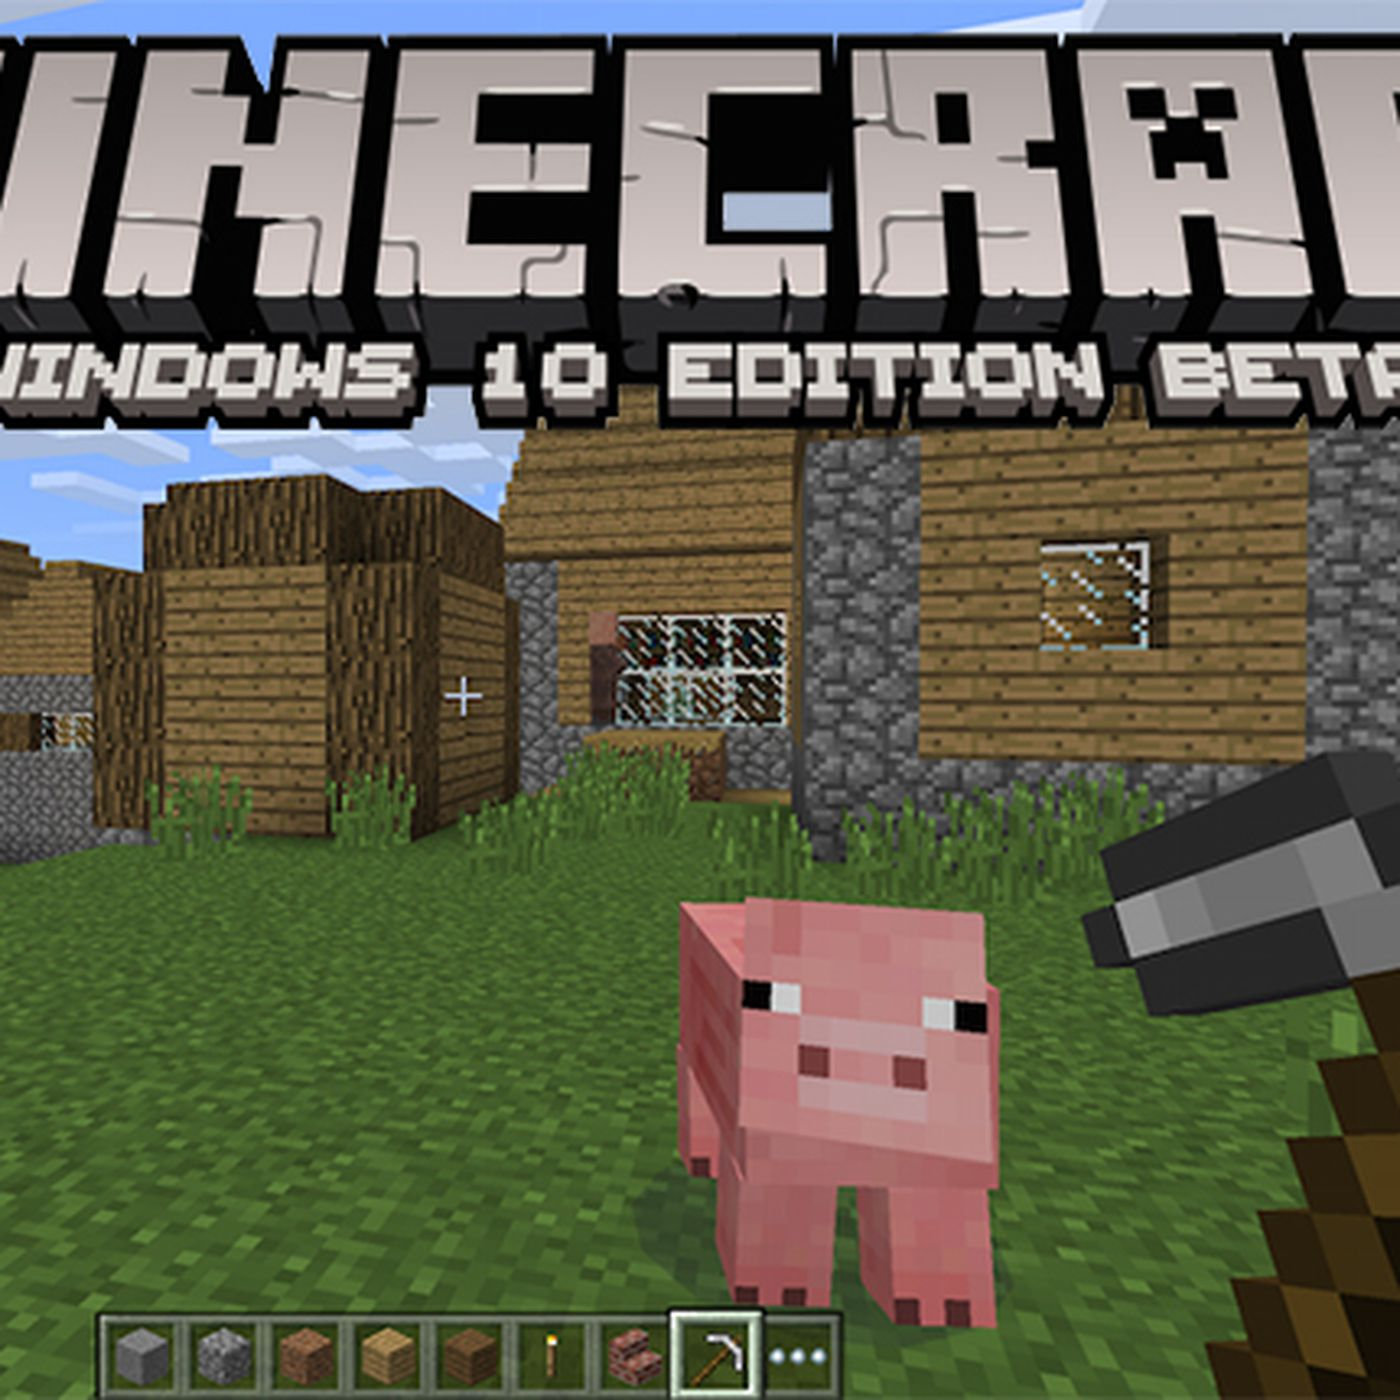 Minecraft adds cross-platform play so Windows 12 players can build